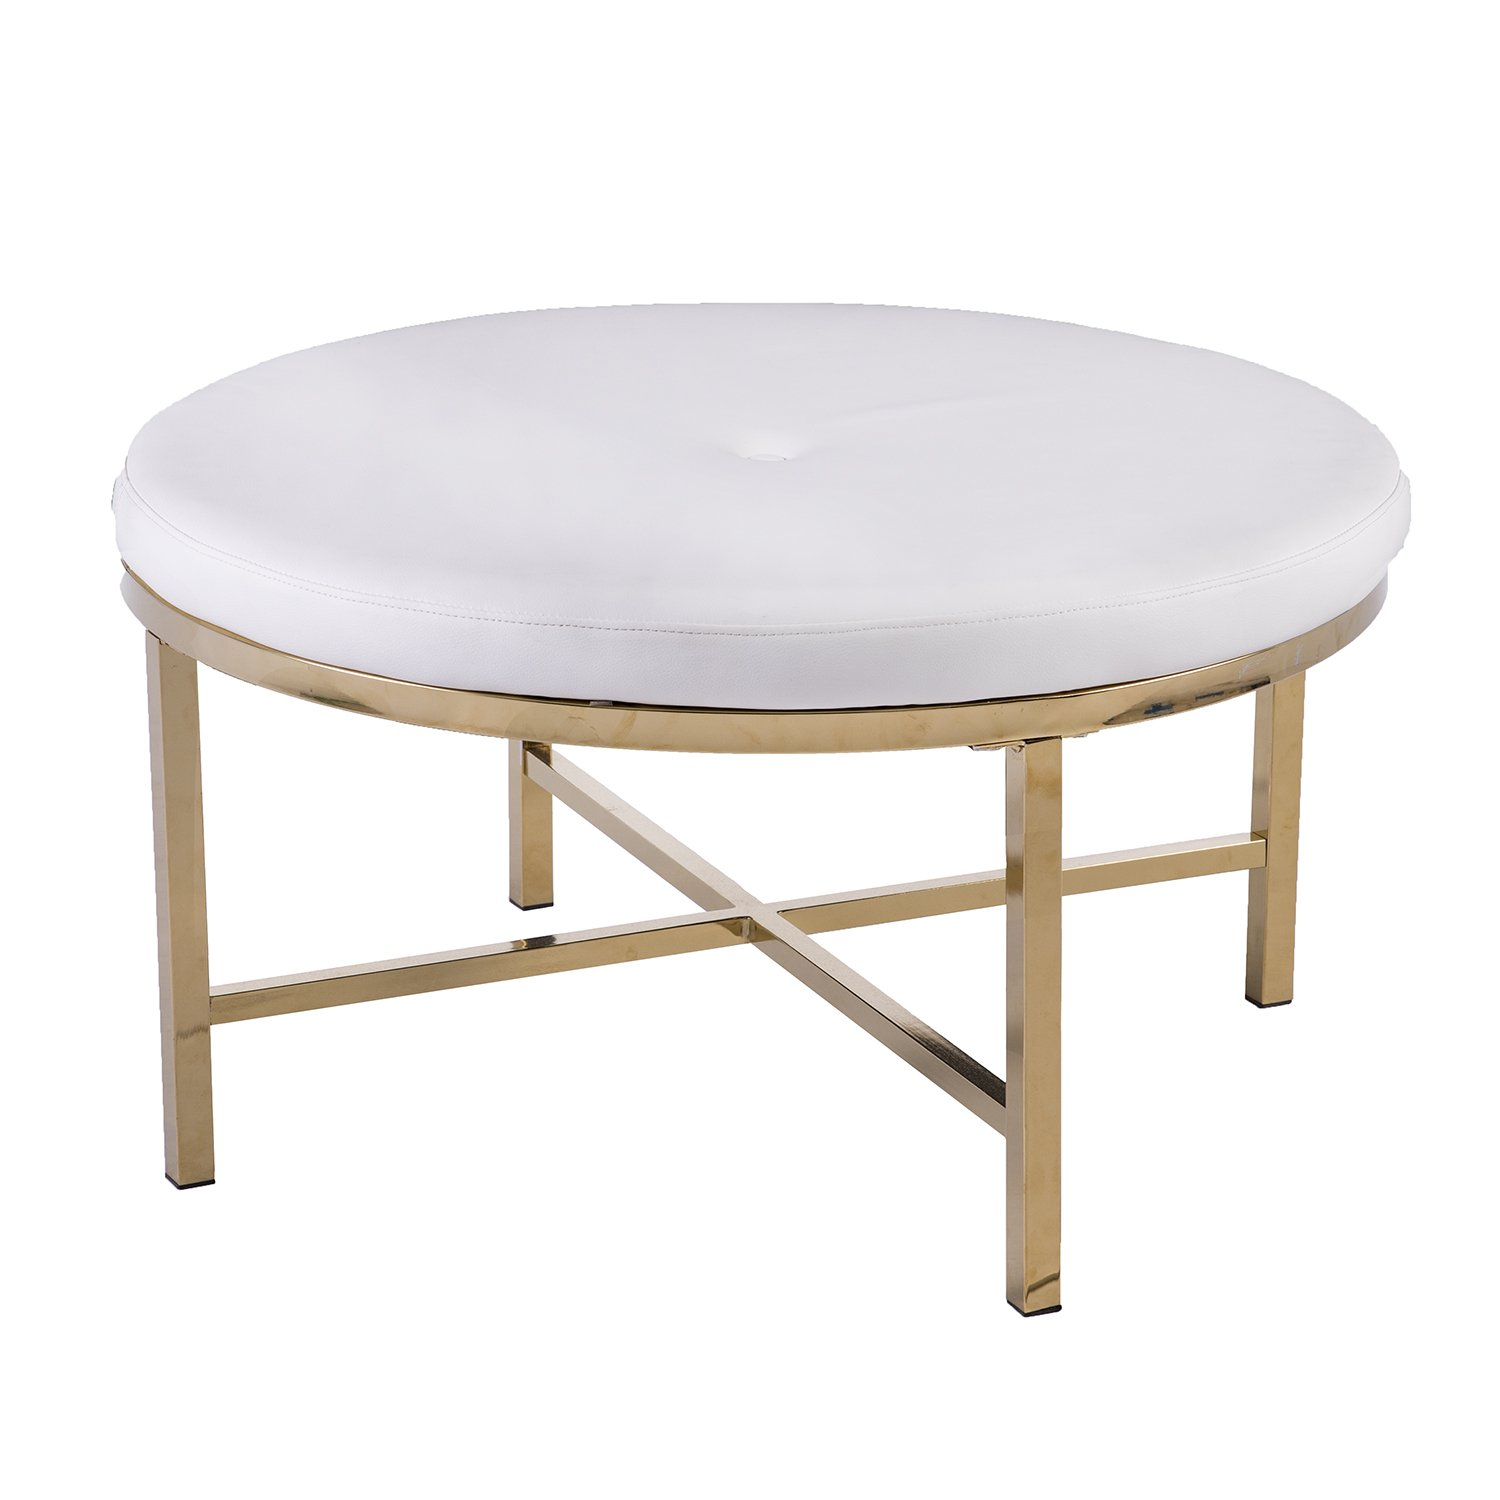 Round Coffee Table With Ottomans.Amazon Com Furniture Hotspot White Faux Leather Ottoman Table